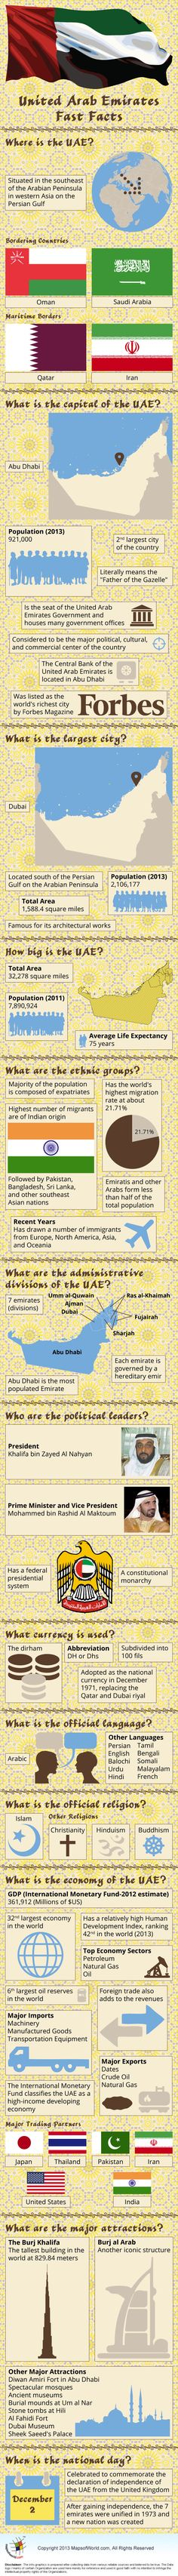 Geography of the United Arab Emirates, Infographic of UAE